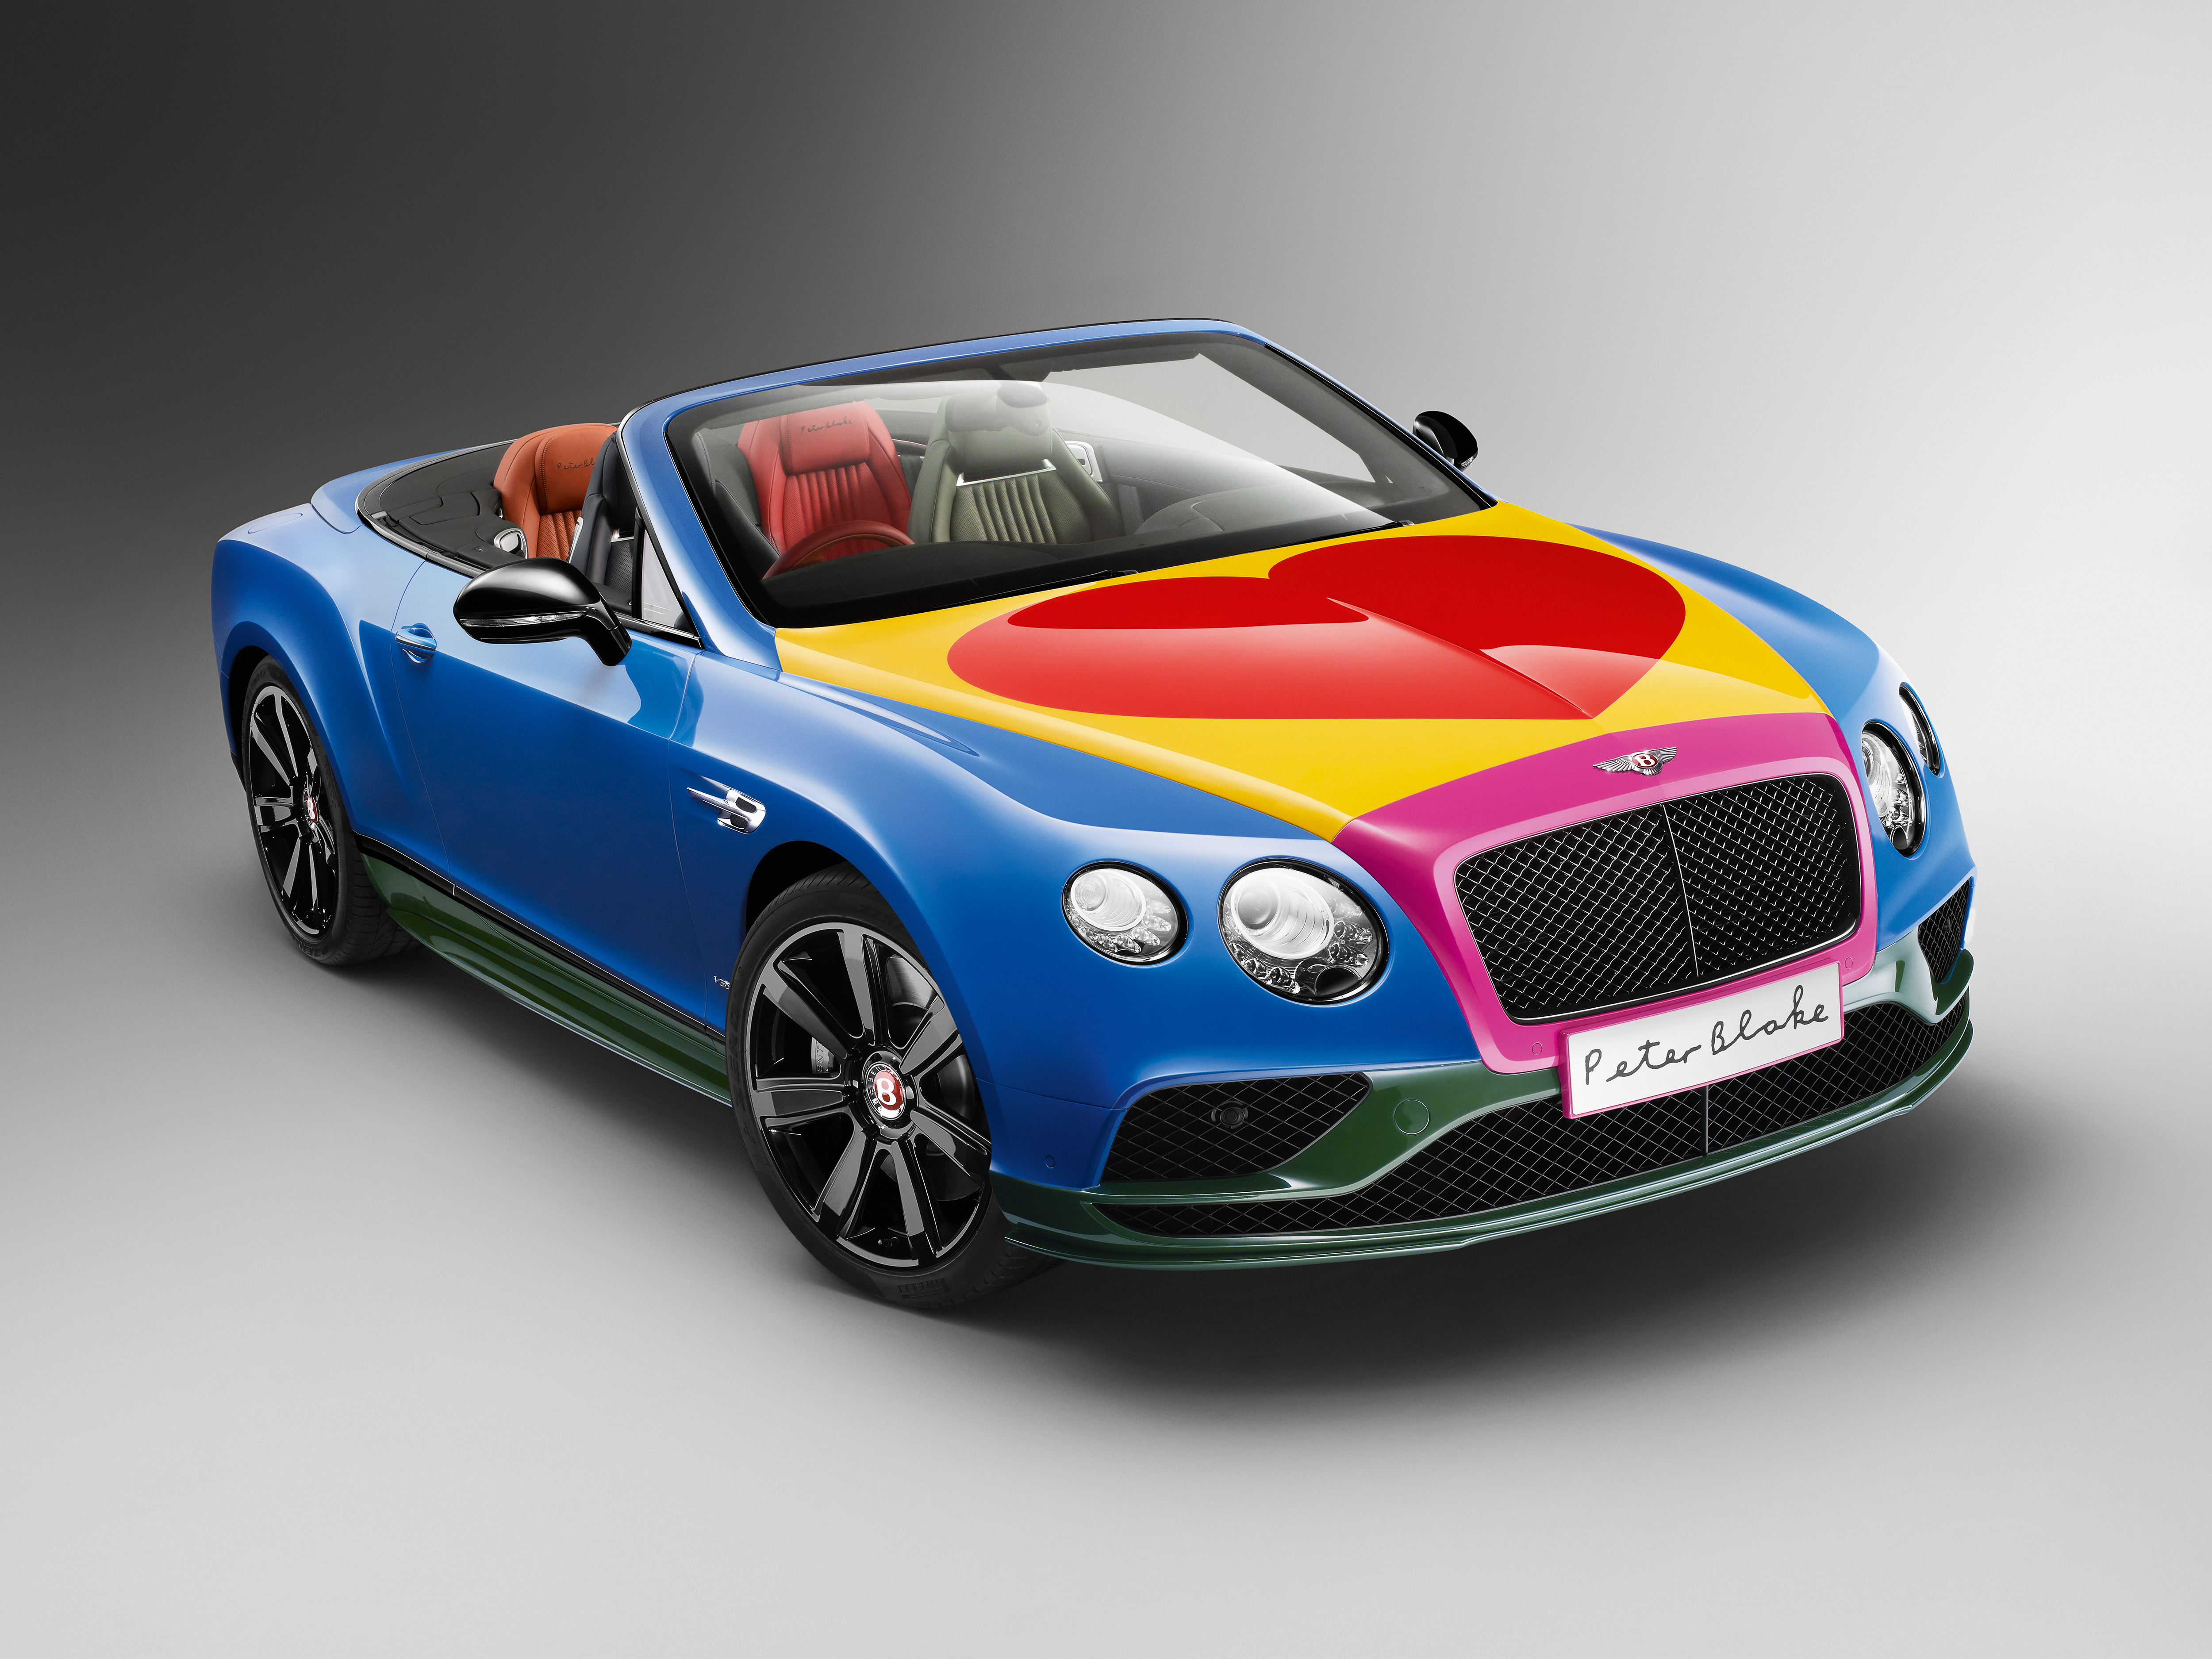 SIR PETER BLAKE POP ART BENTLEY TO BE AUCTIONED FOR CHARITY AT BONHAMS FESTIVAL OF SPEED SALE  cover